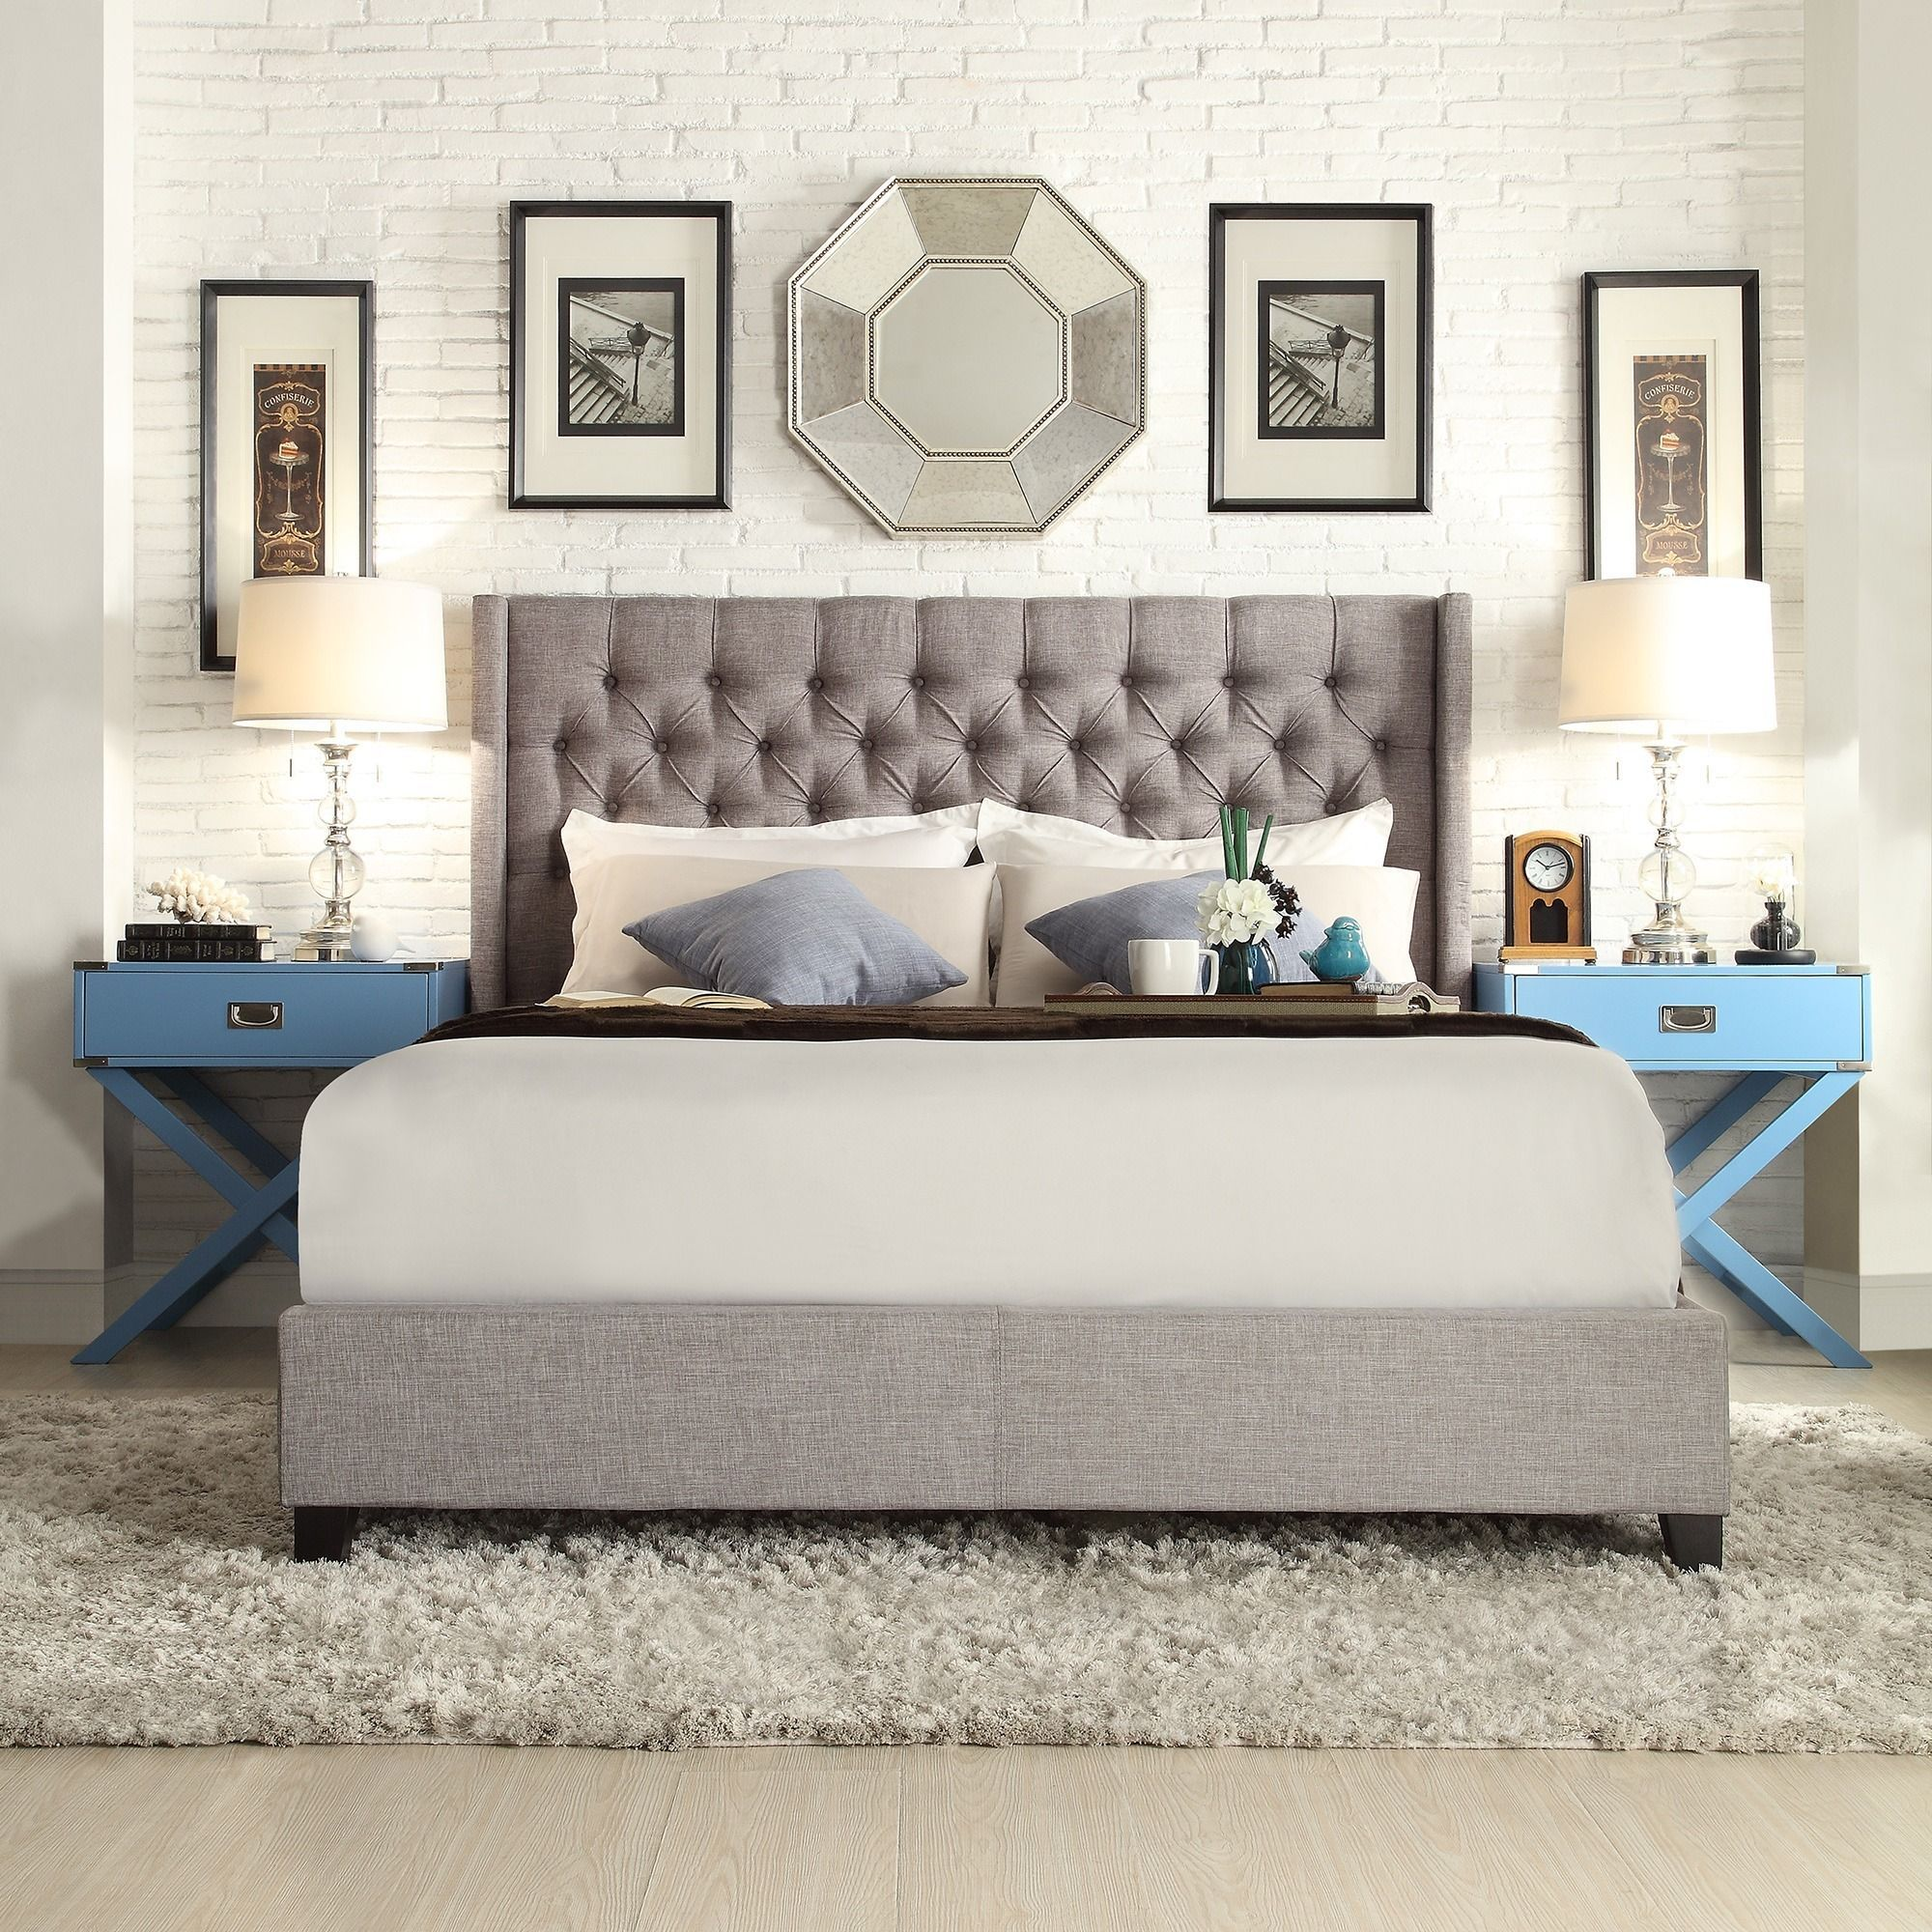 Signal Hills Naples Wingback Button Tufted Upholstered King Bed ...